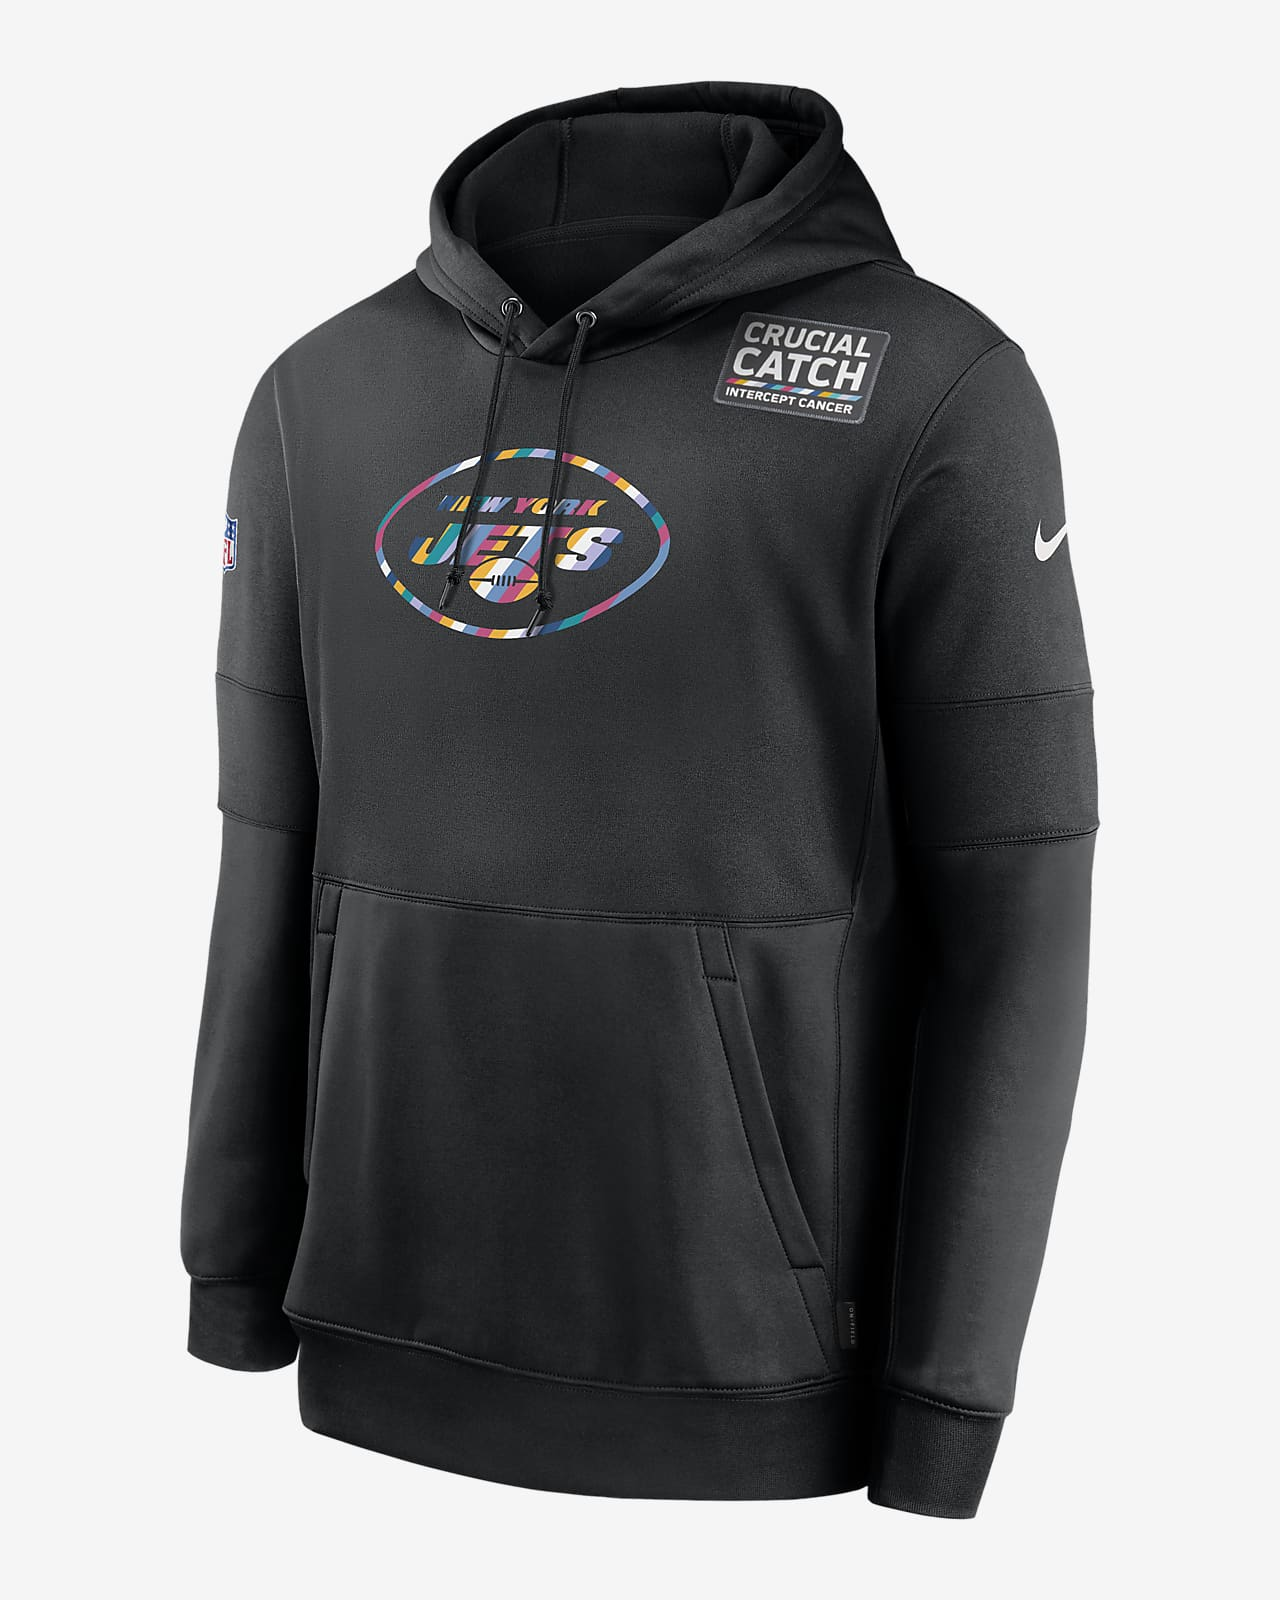 Nike Therma Crucial Catch (NFL Jets) Men's Hoodie